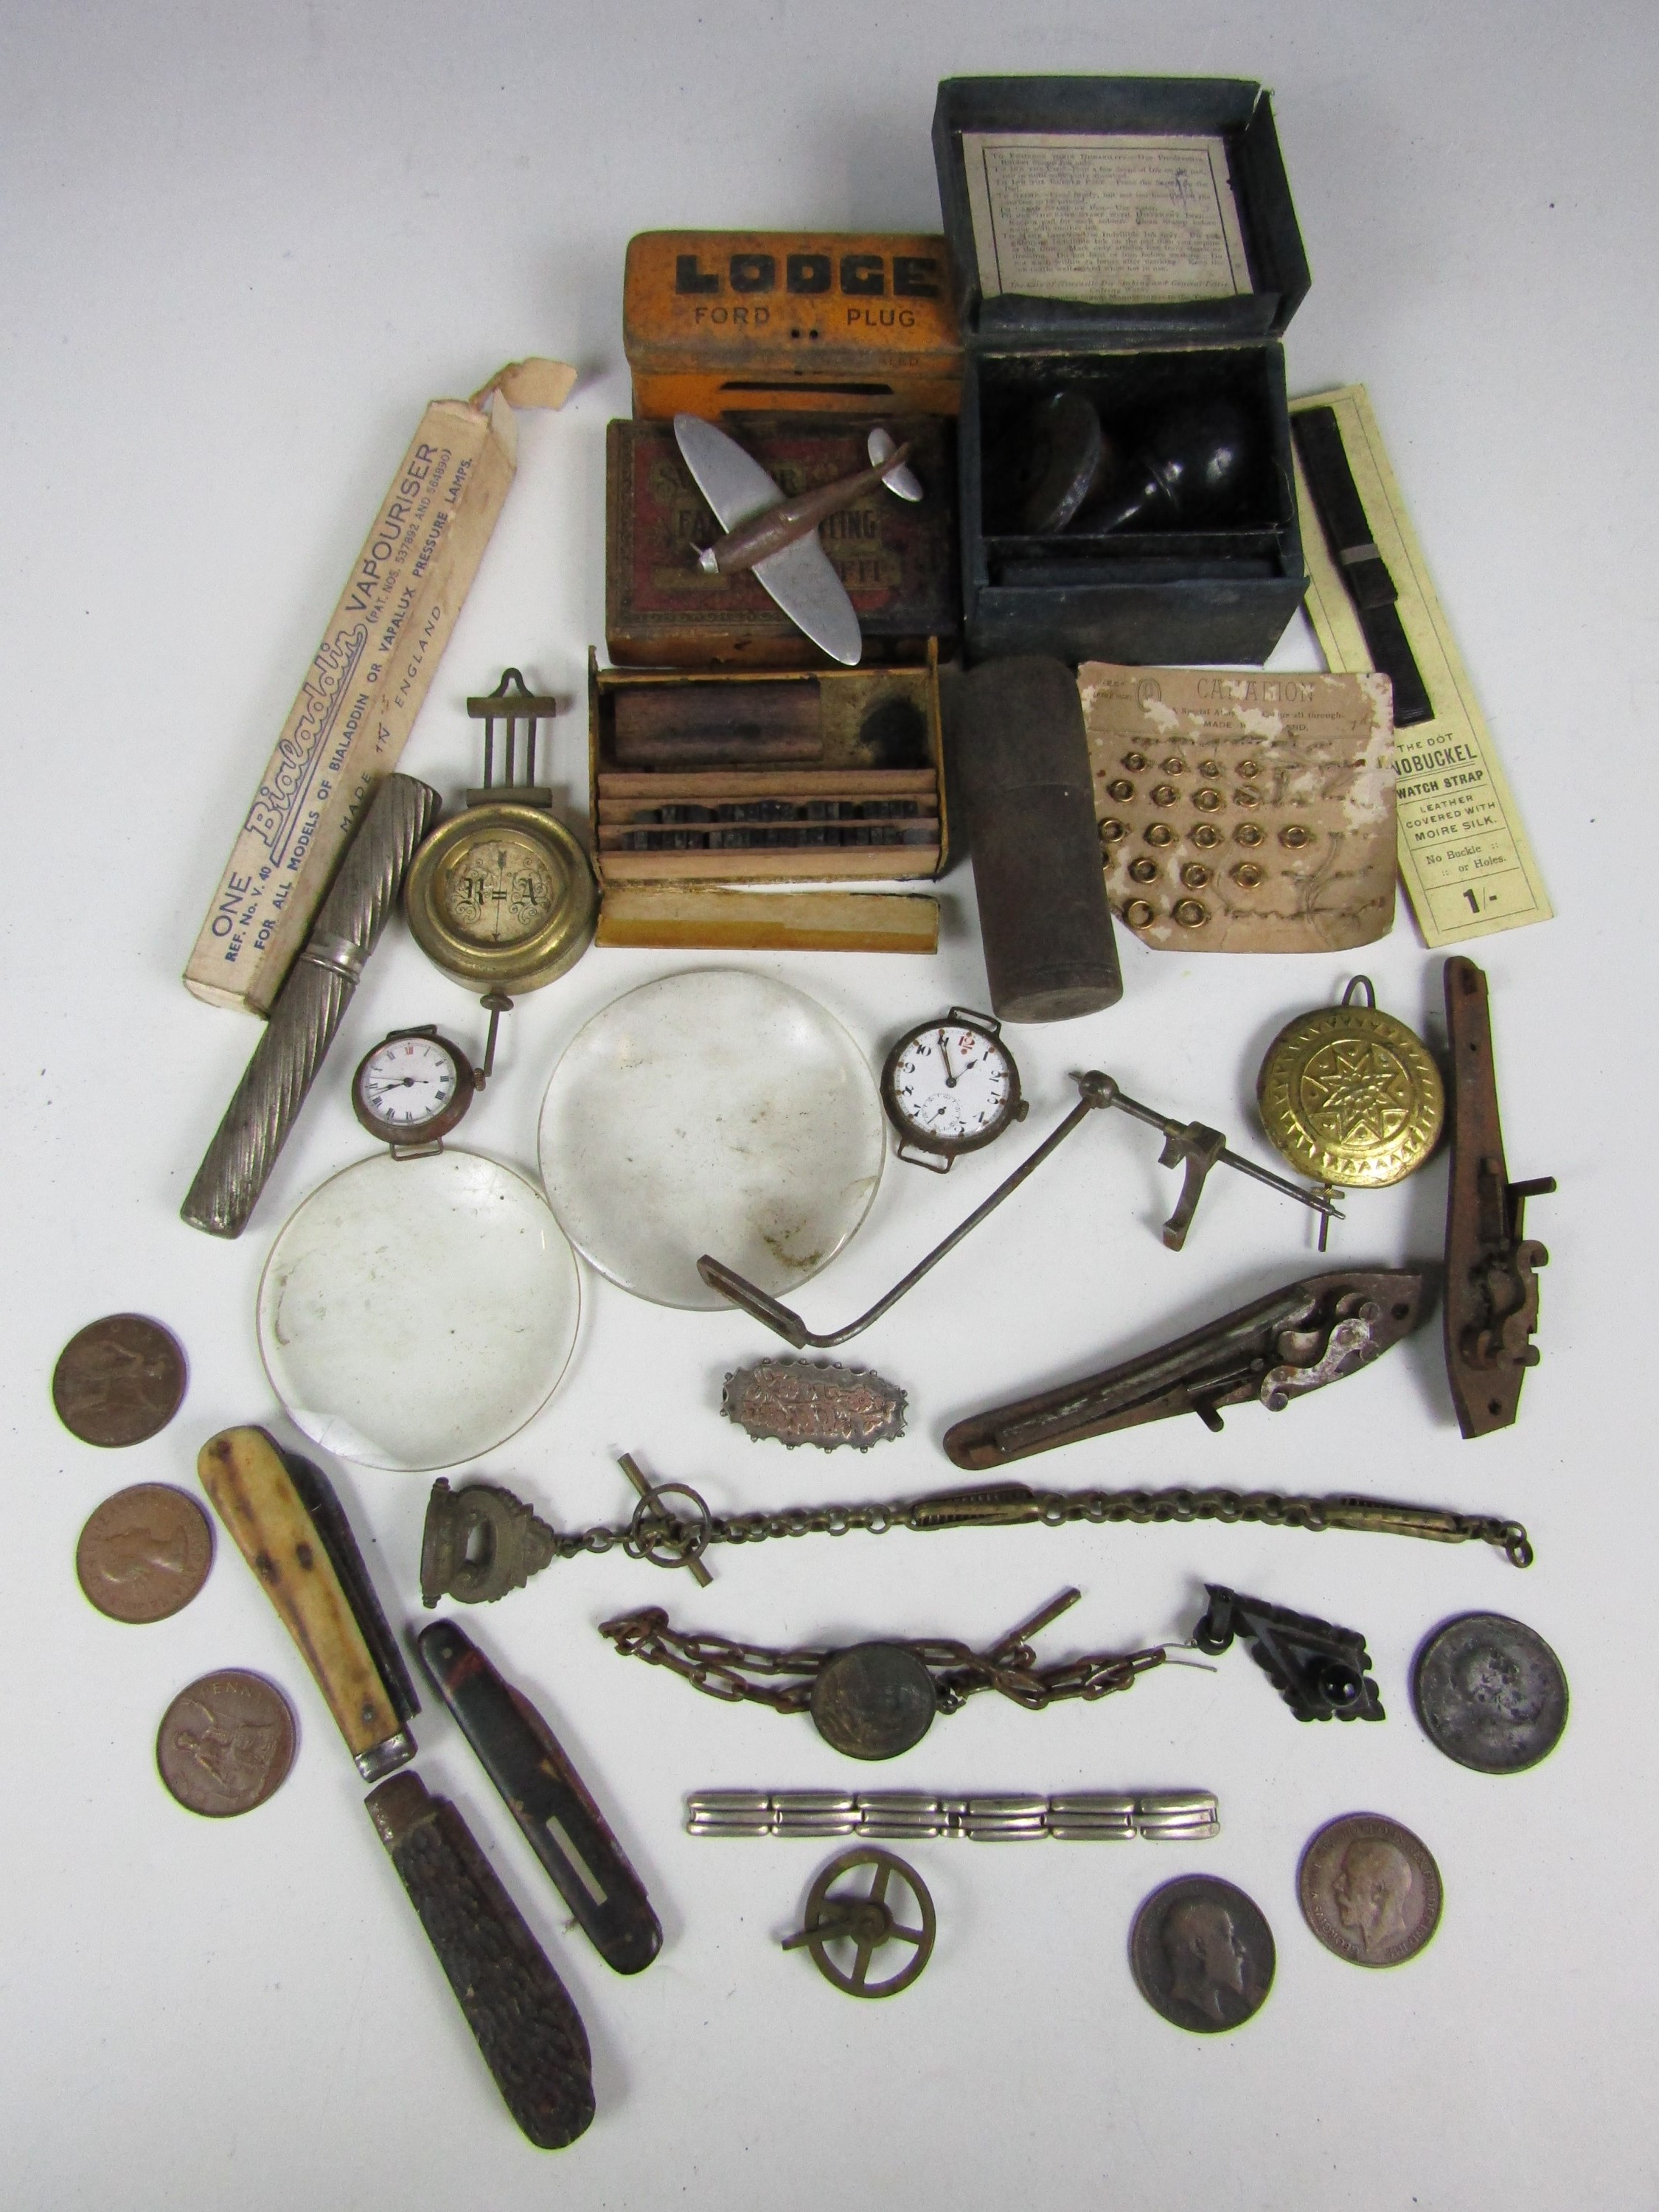 Lot 9 - Sundry collectors' items including watch parts, coins, two magnifying lenses and pen knives etc.